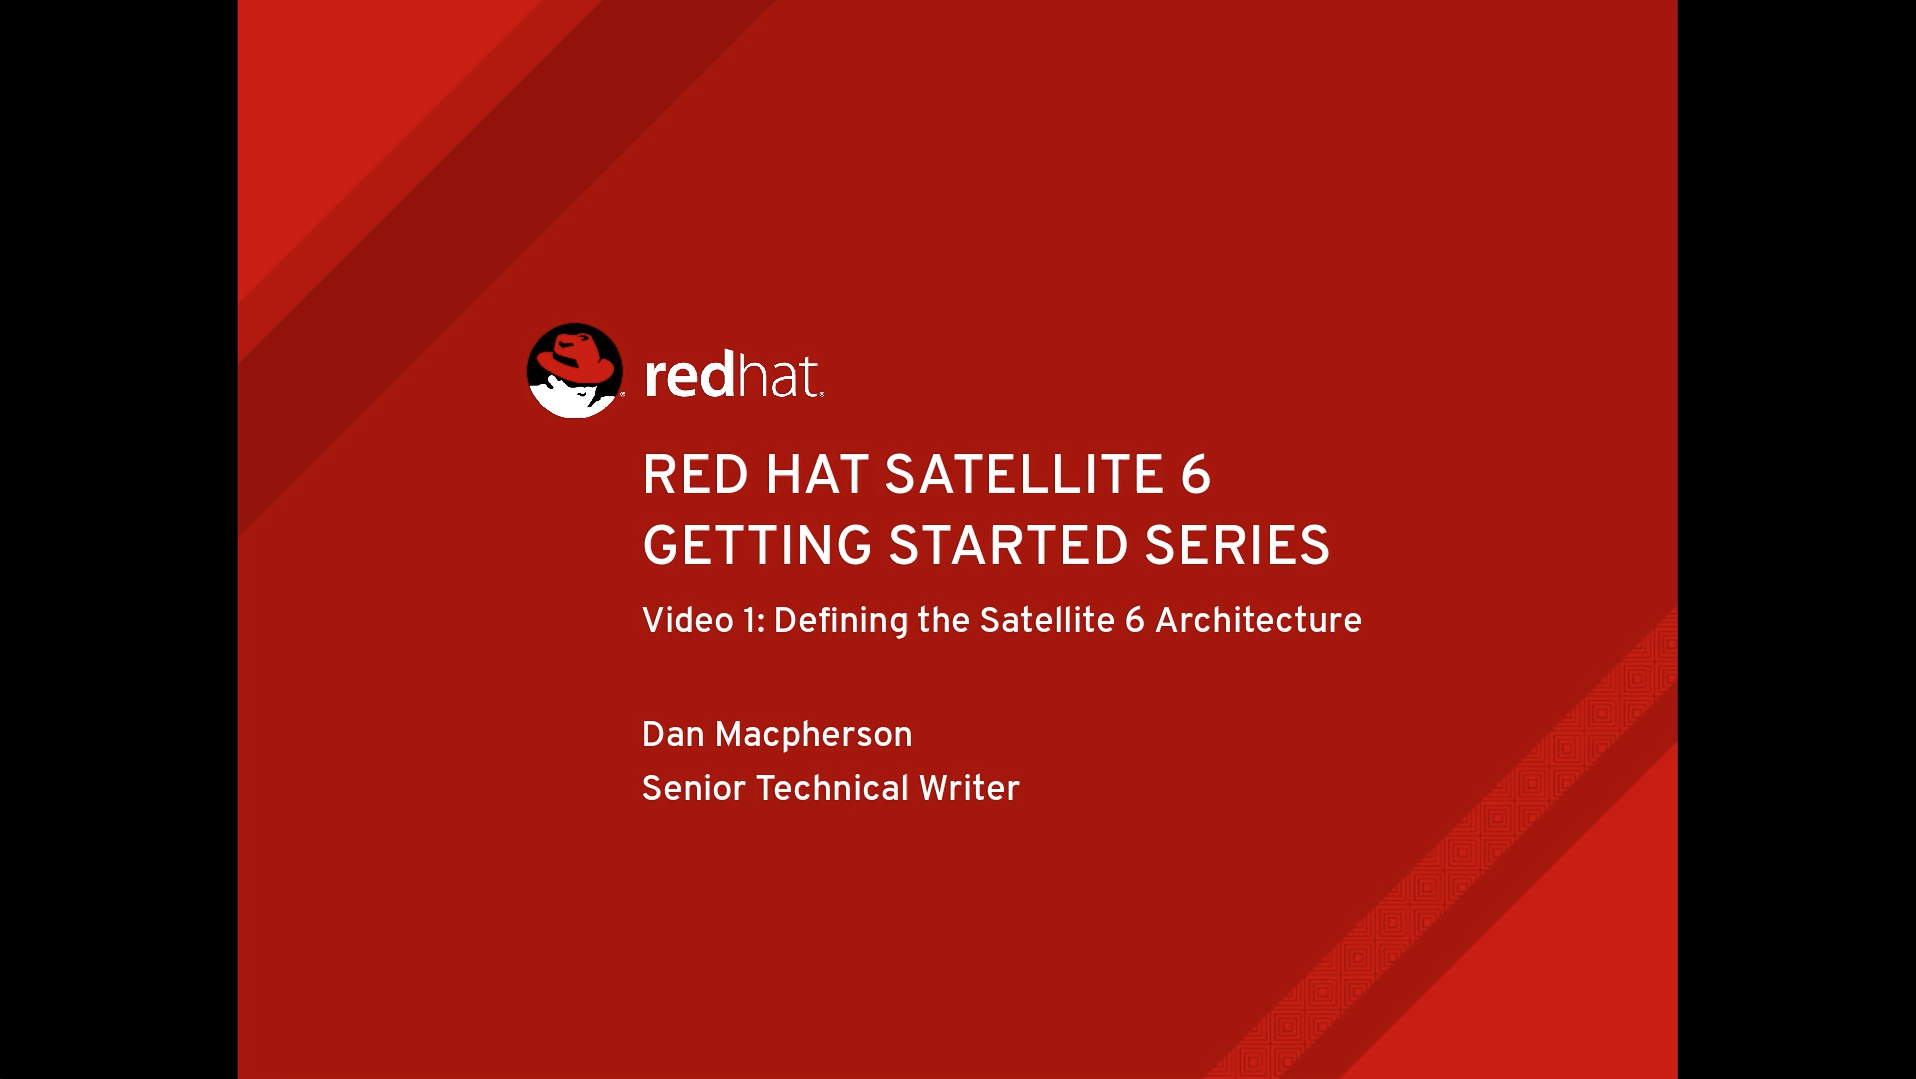 Red hat satellite red hat customer portal an overview of satellite baditri Gallery